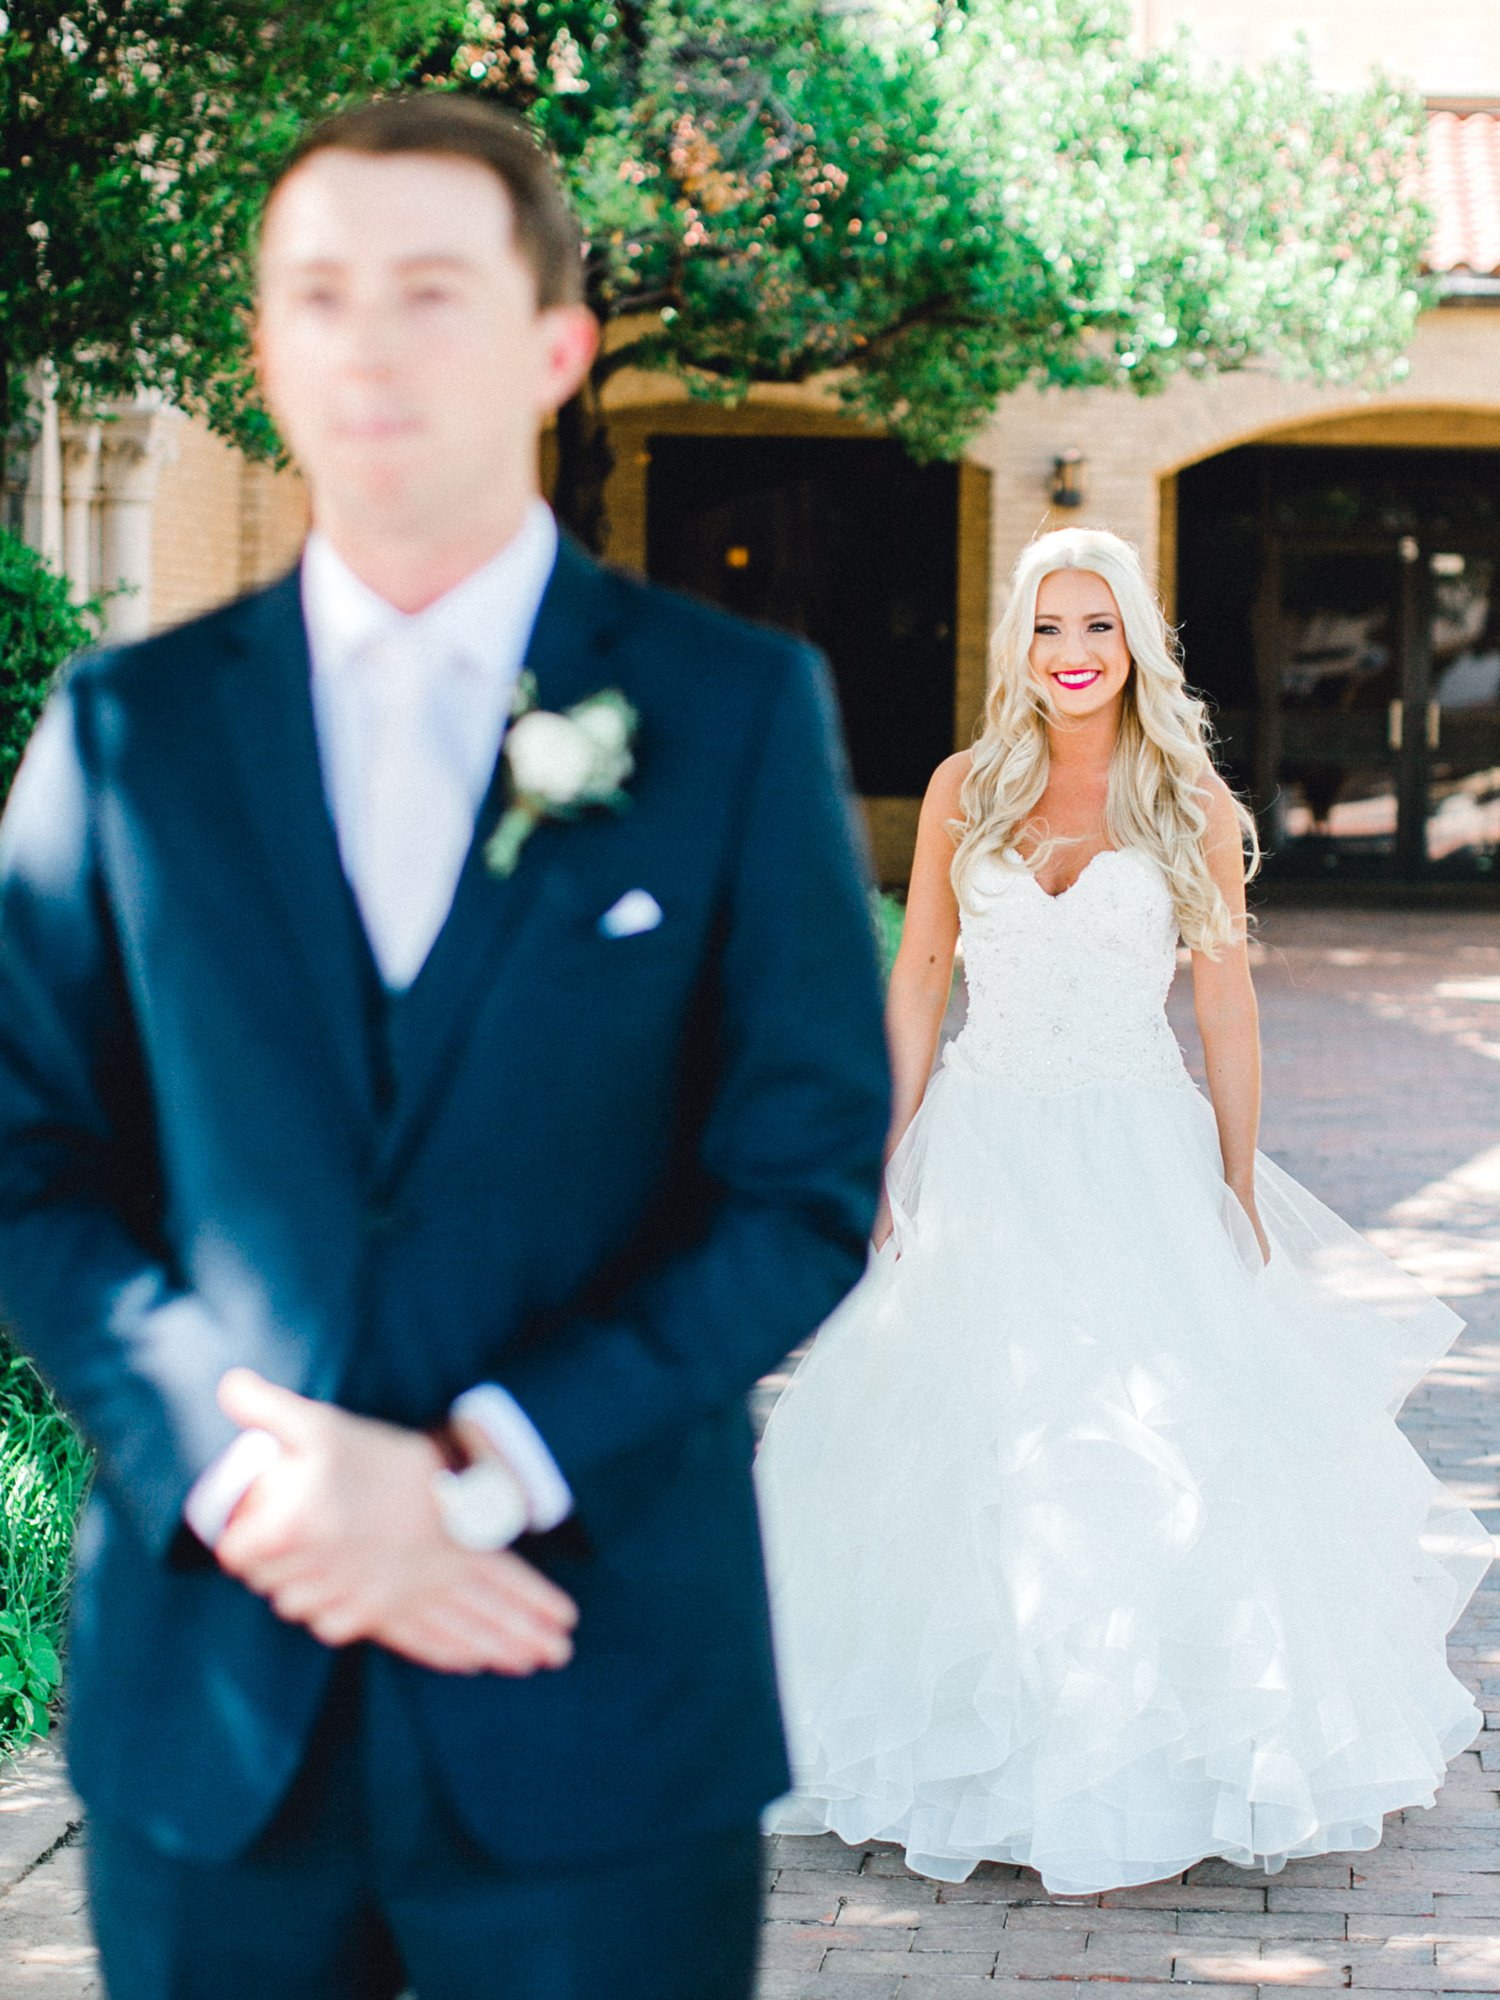 MADI_AND_WILL_STEPHENS_ALLEEJ_LUBBOCK_PHOTOGRAPHER_TEXAS+TECH+FRAZIER_ALUMNI0026.jpg